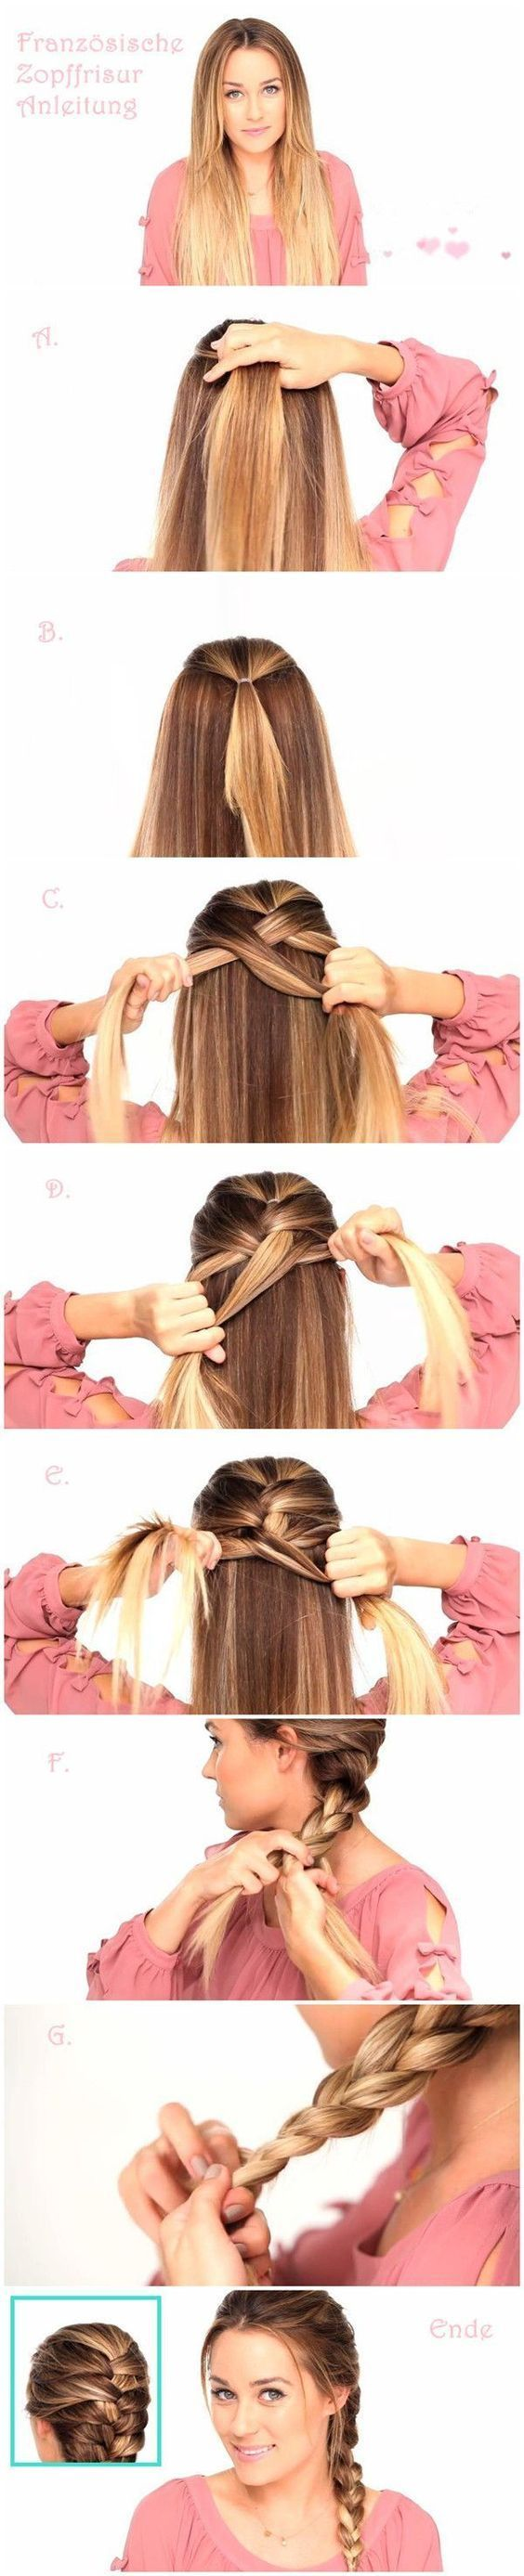 Hairstyles with braids tutorial step by step French braids - Peinados con trenzas tutorial paso a paso para trenza francesa